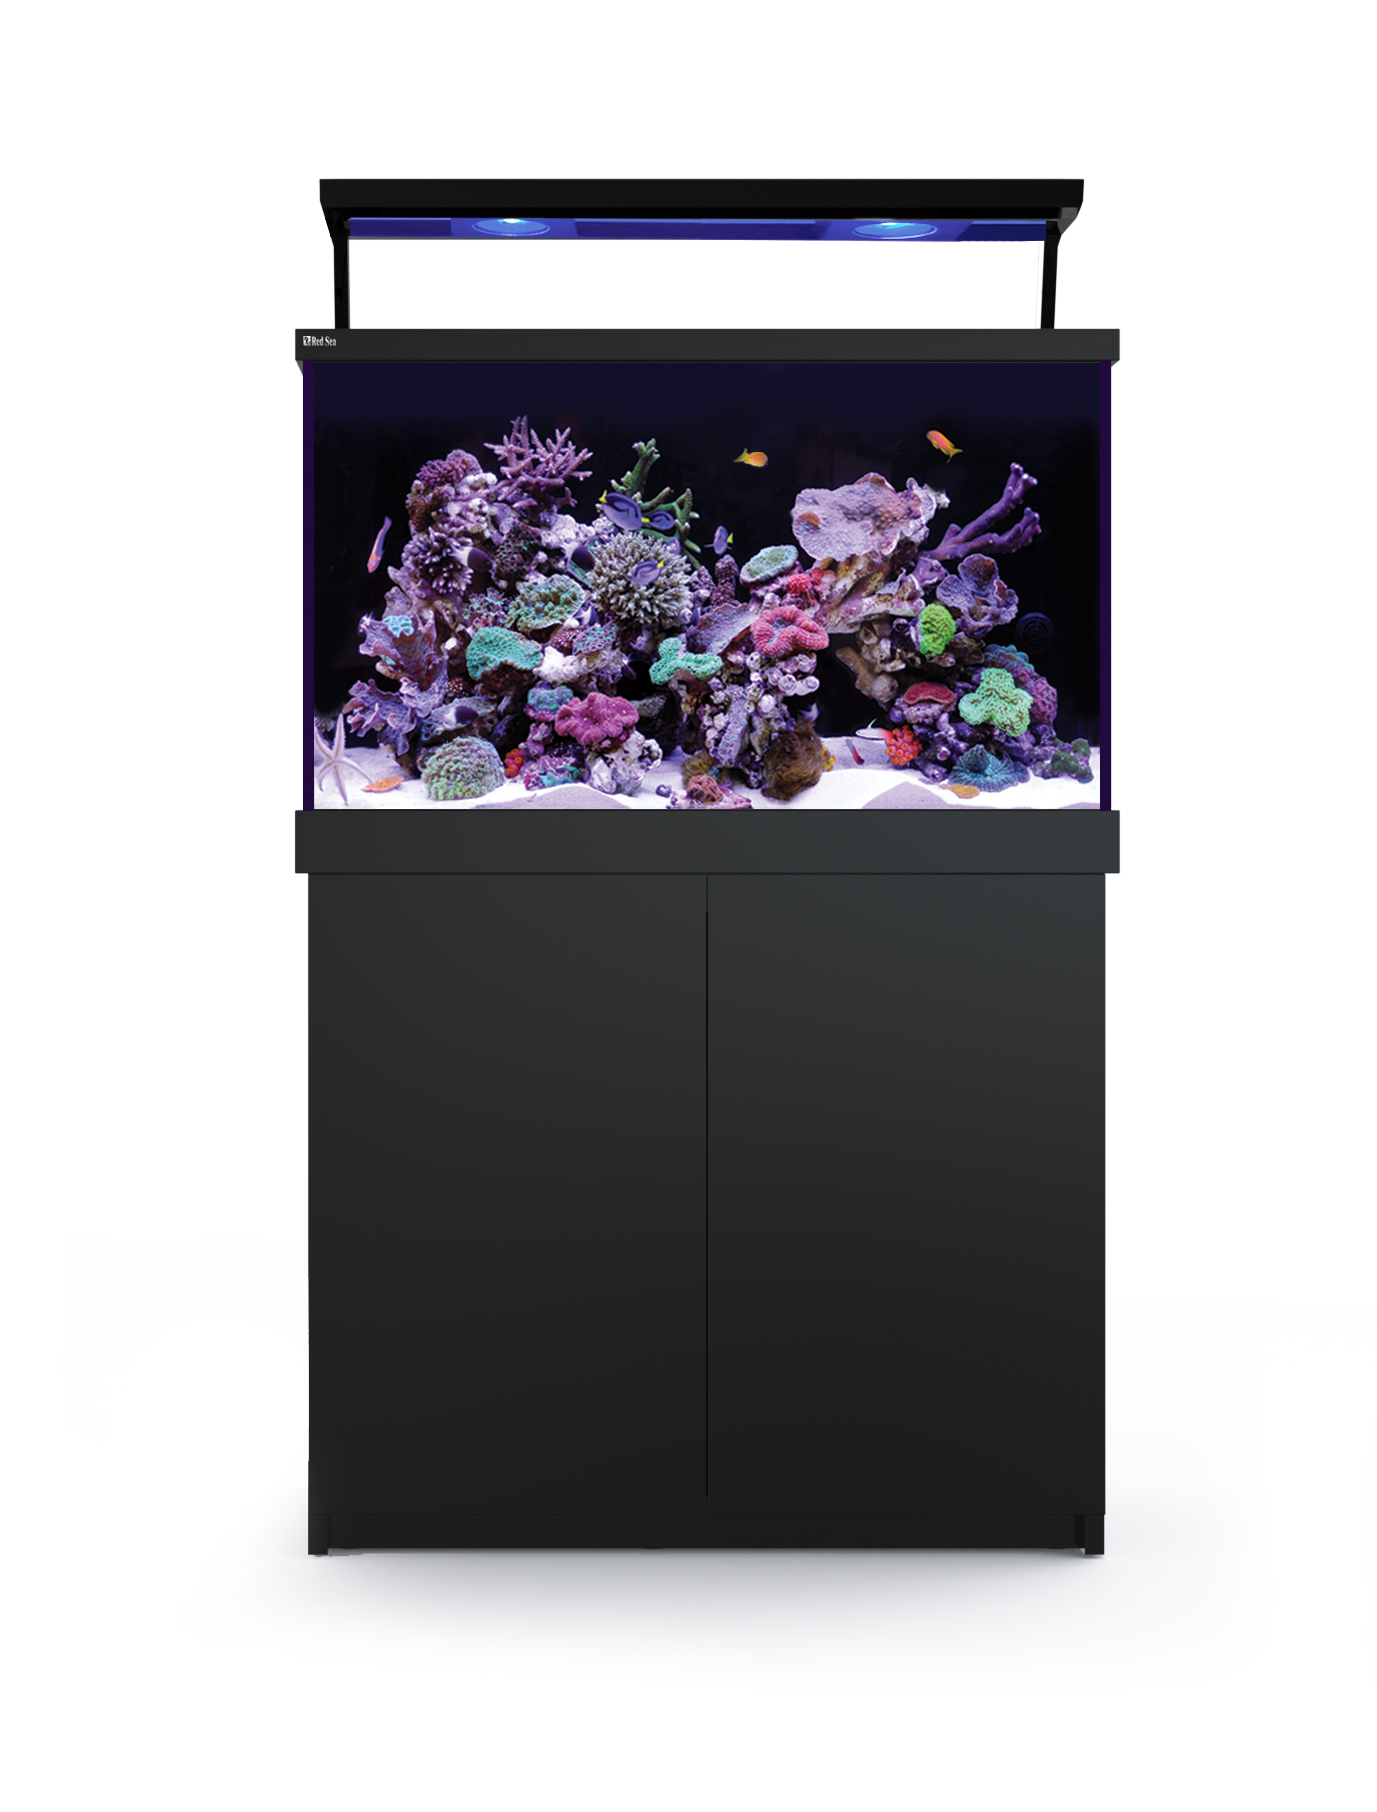 MAX  S 400 (ReefLED ) Complete Reef System - Black